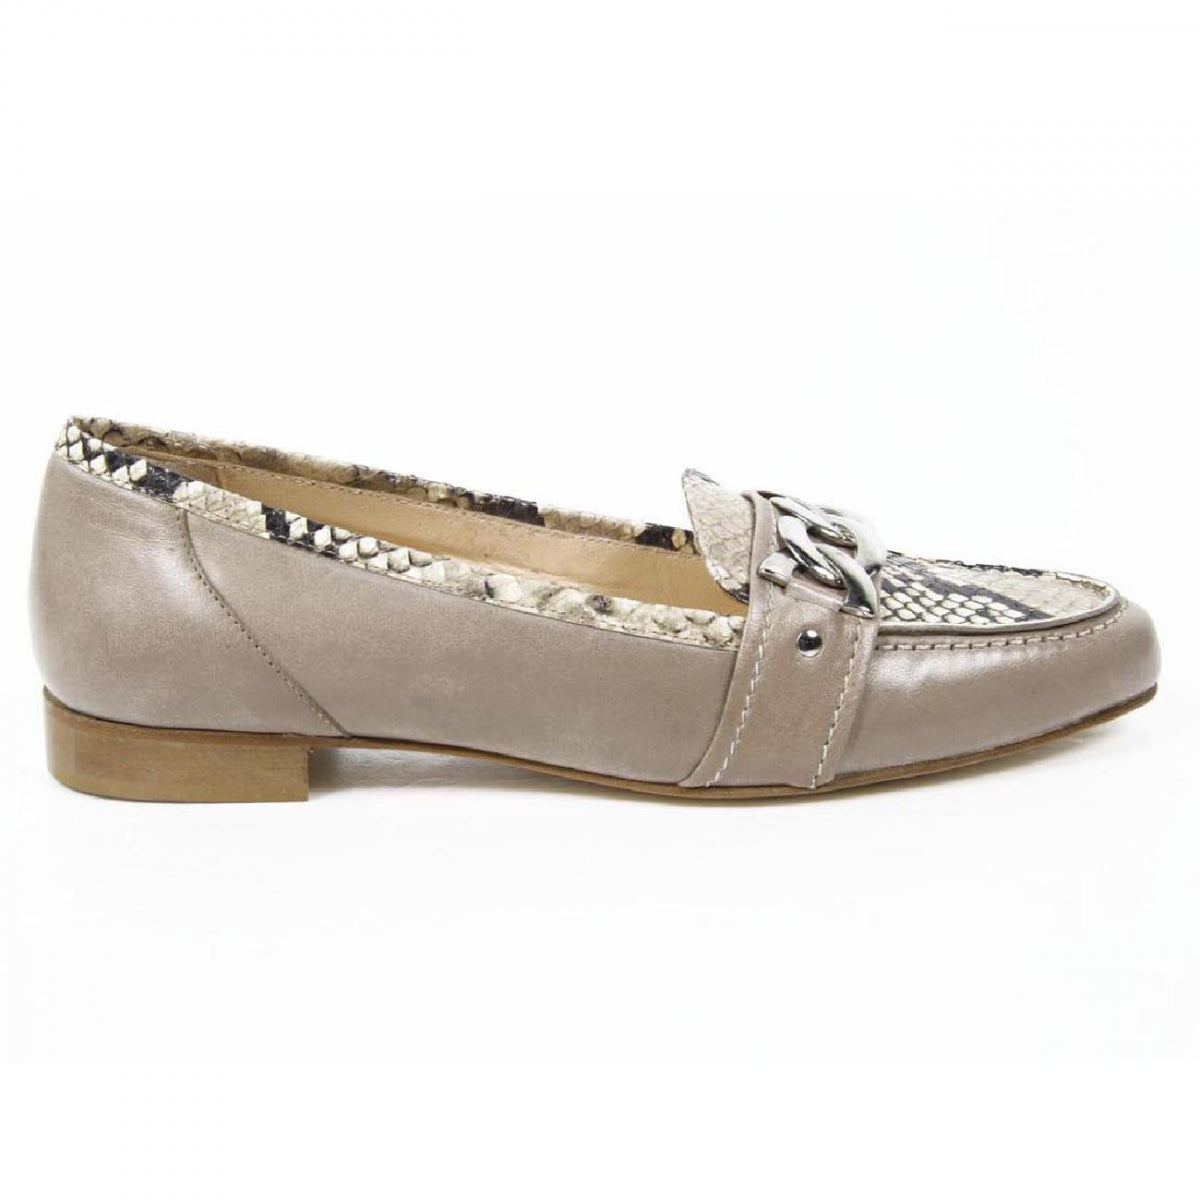 V 1969 Italia Womens loafer 7016 Capretto Beige